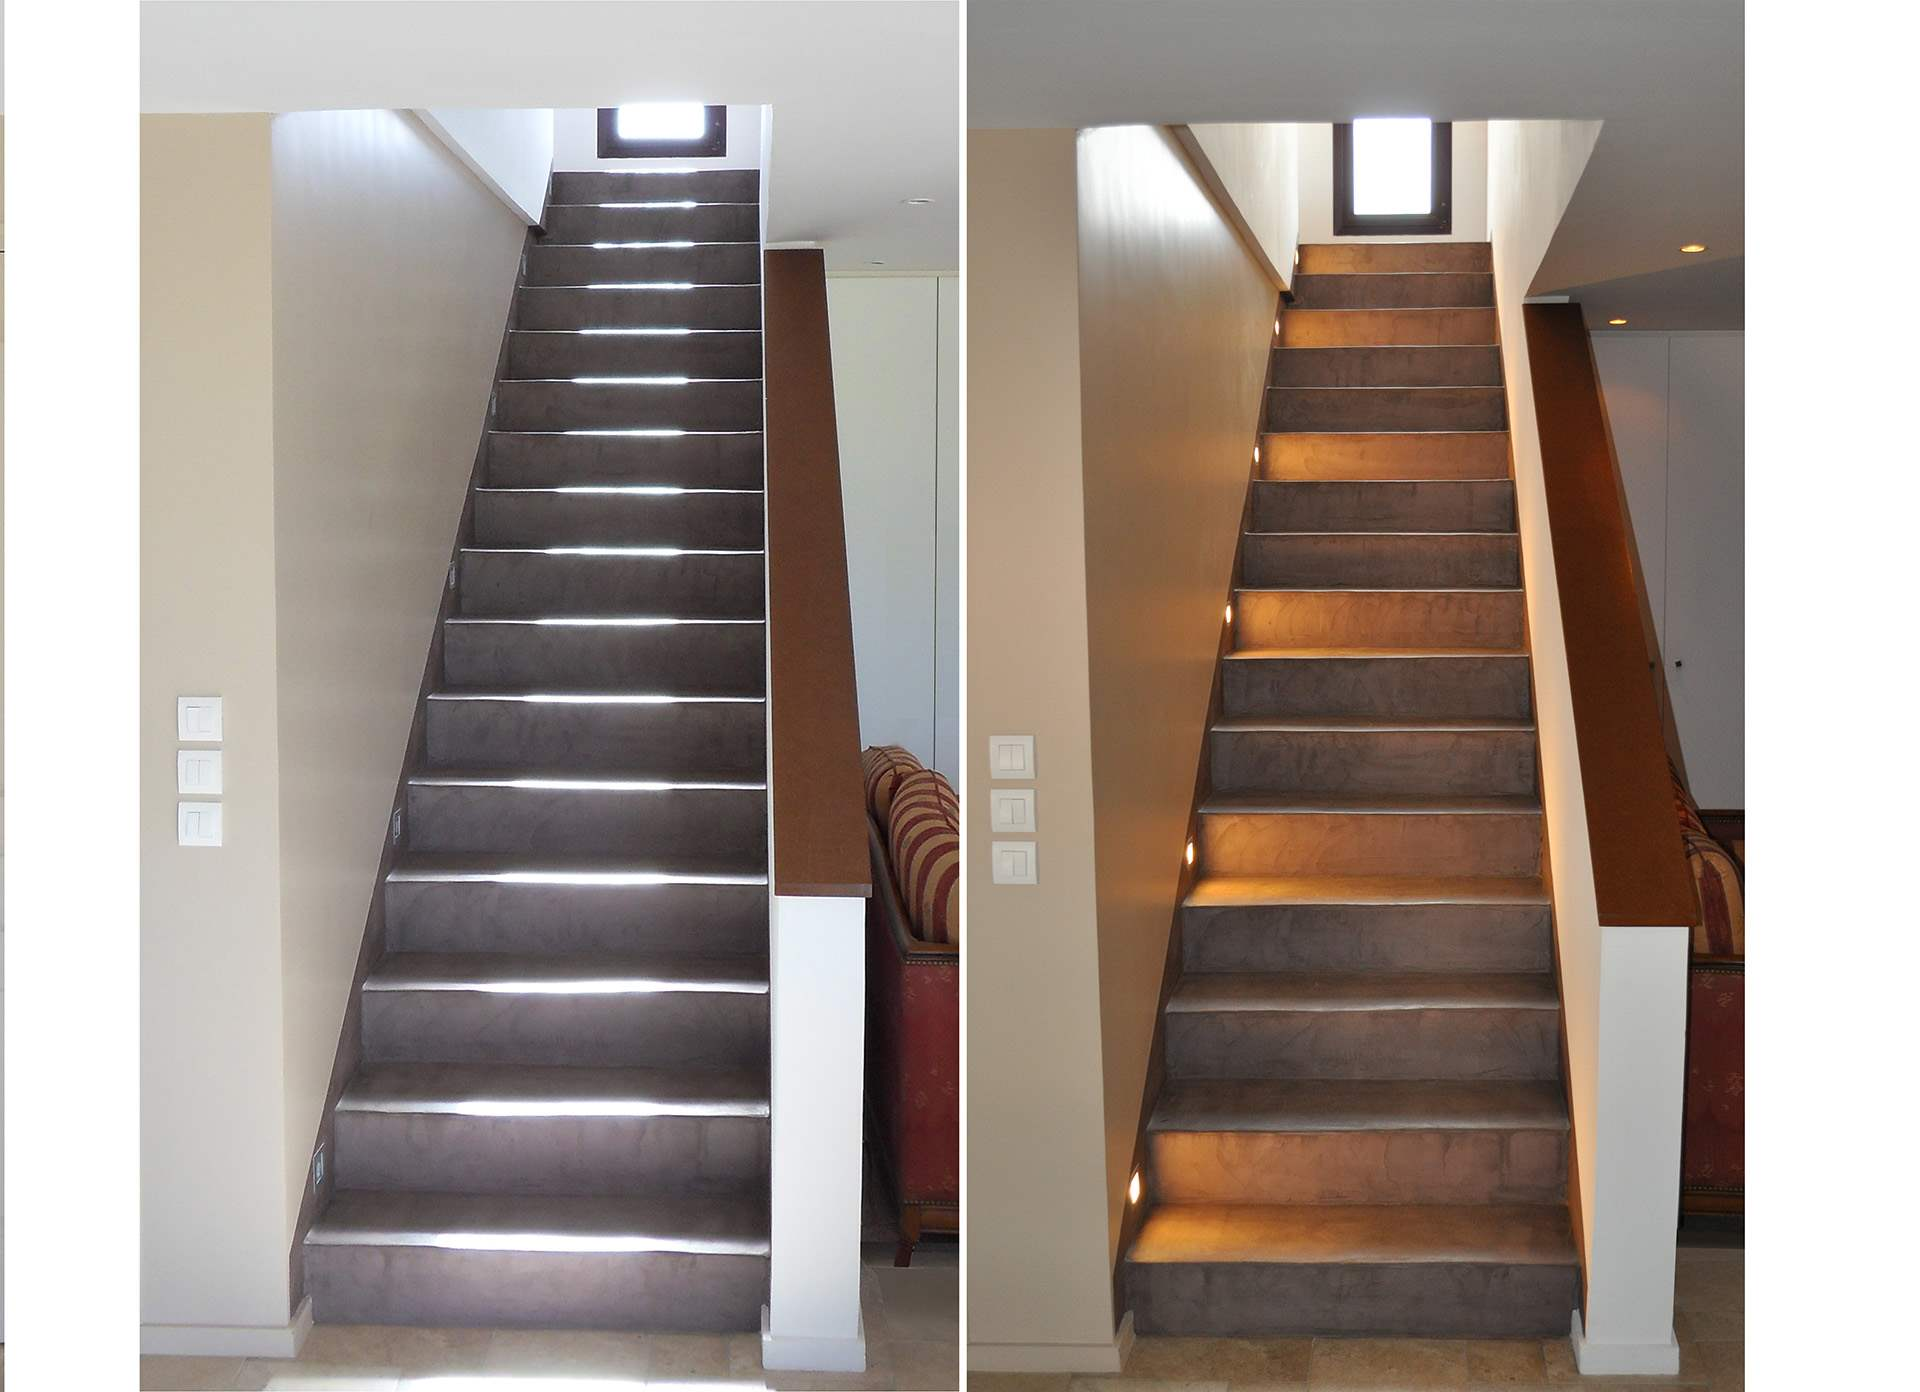 Construction escalier beton interieur 28 images d 233 for Construction escalier exterieur